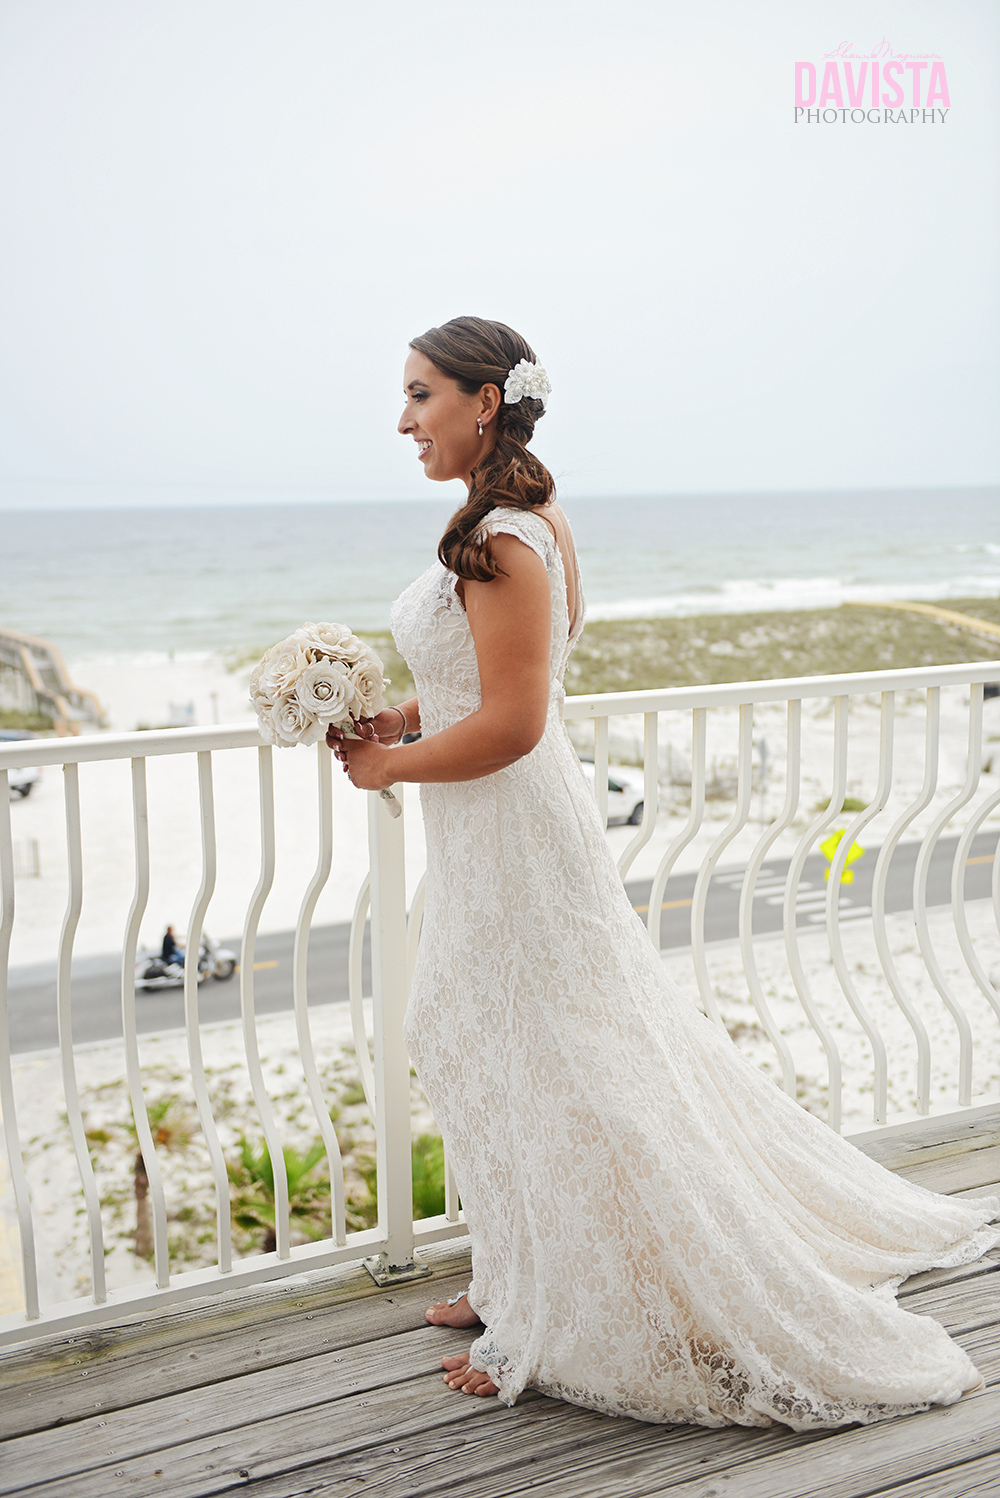 Bridals outdoor on deck